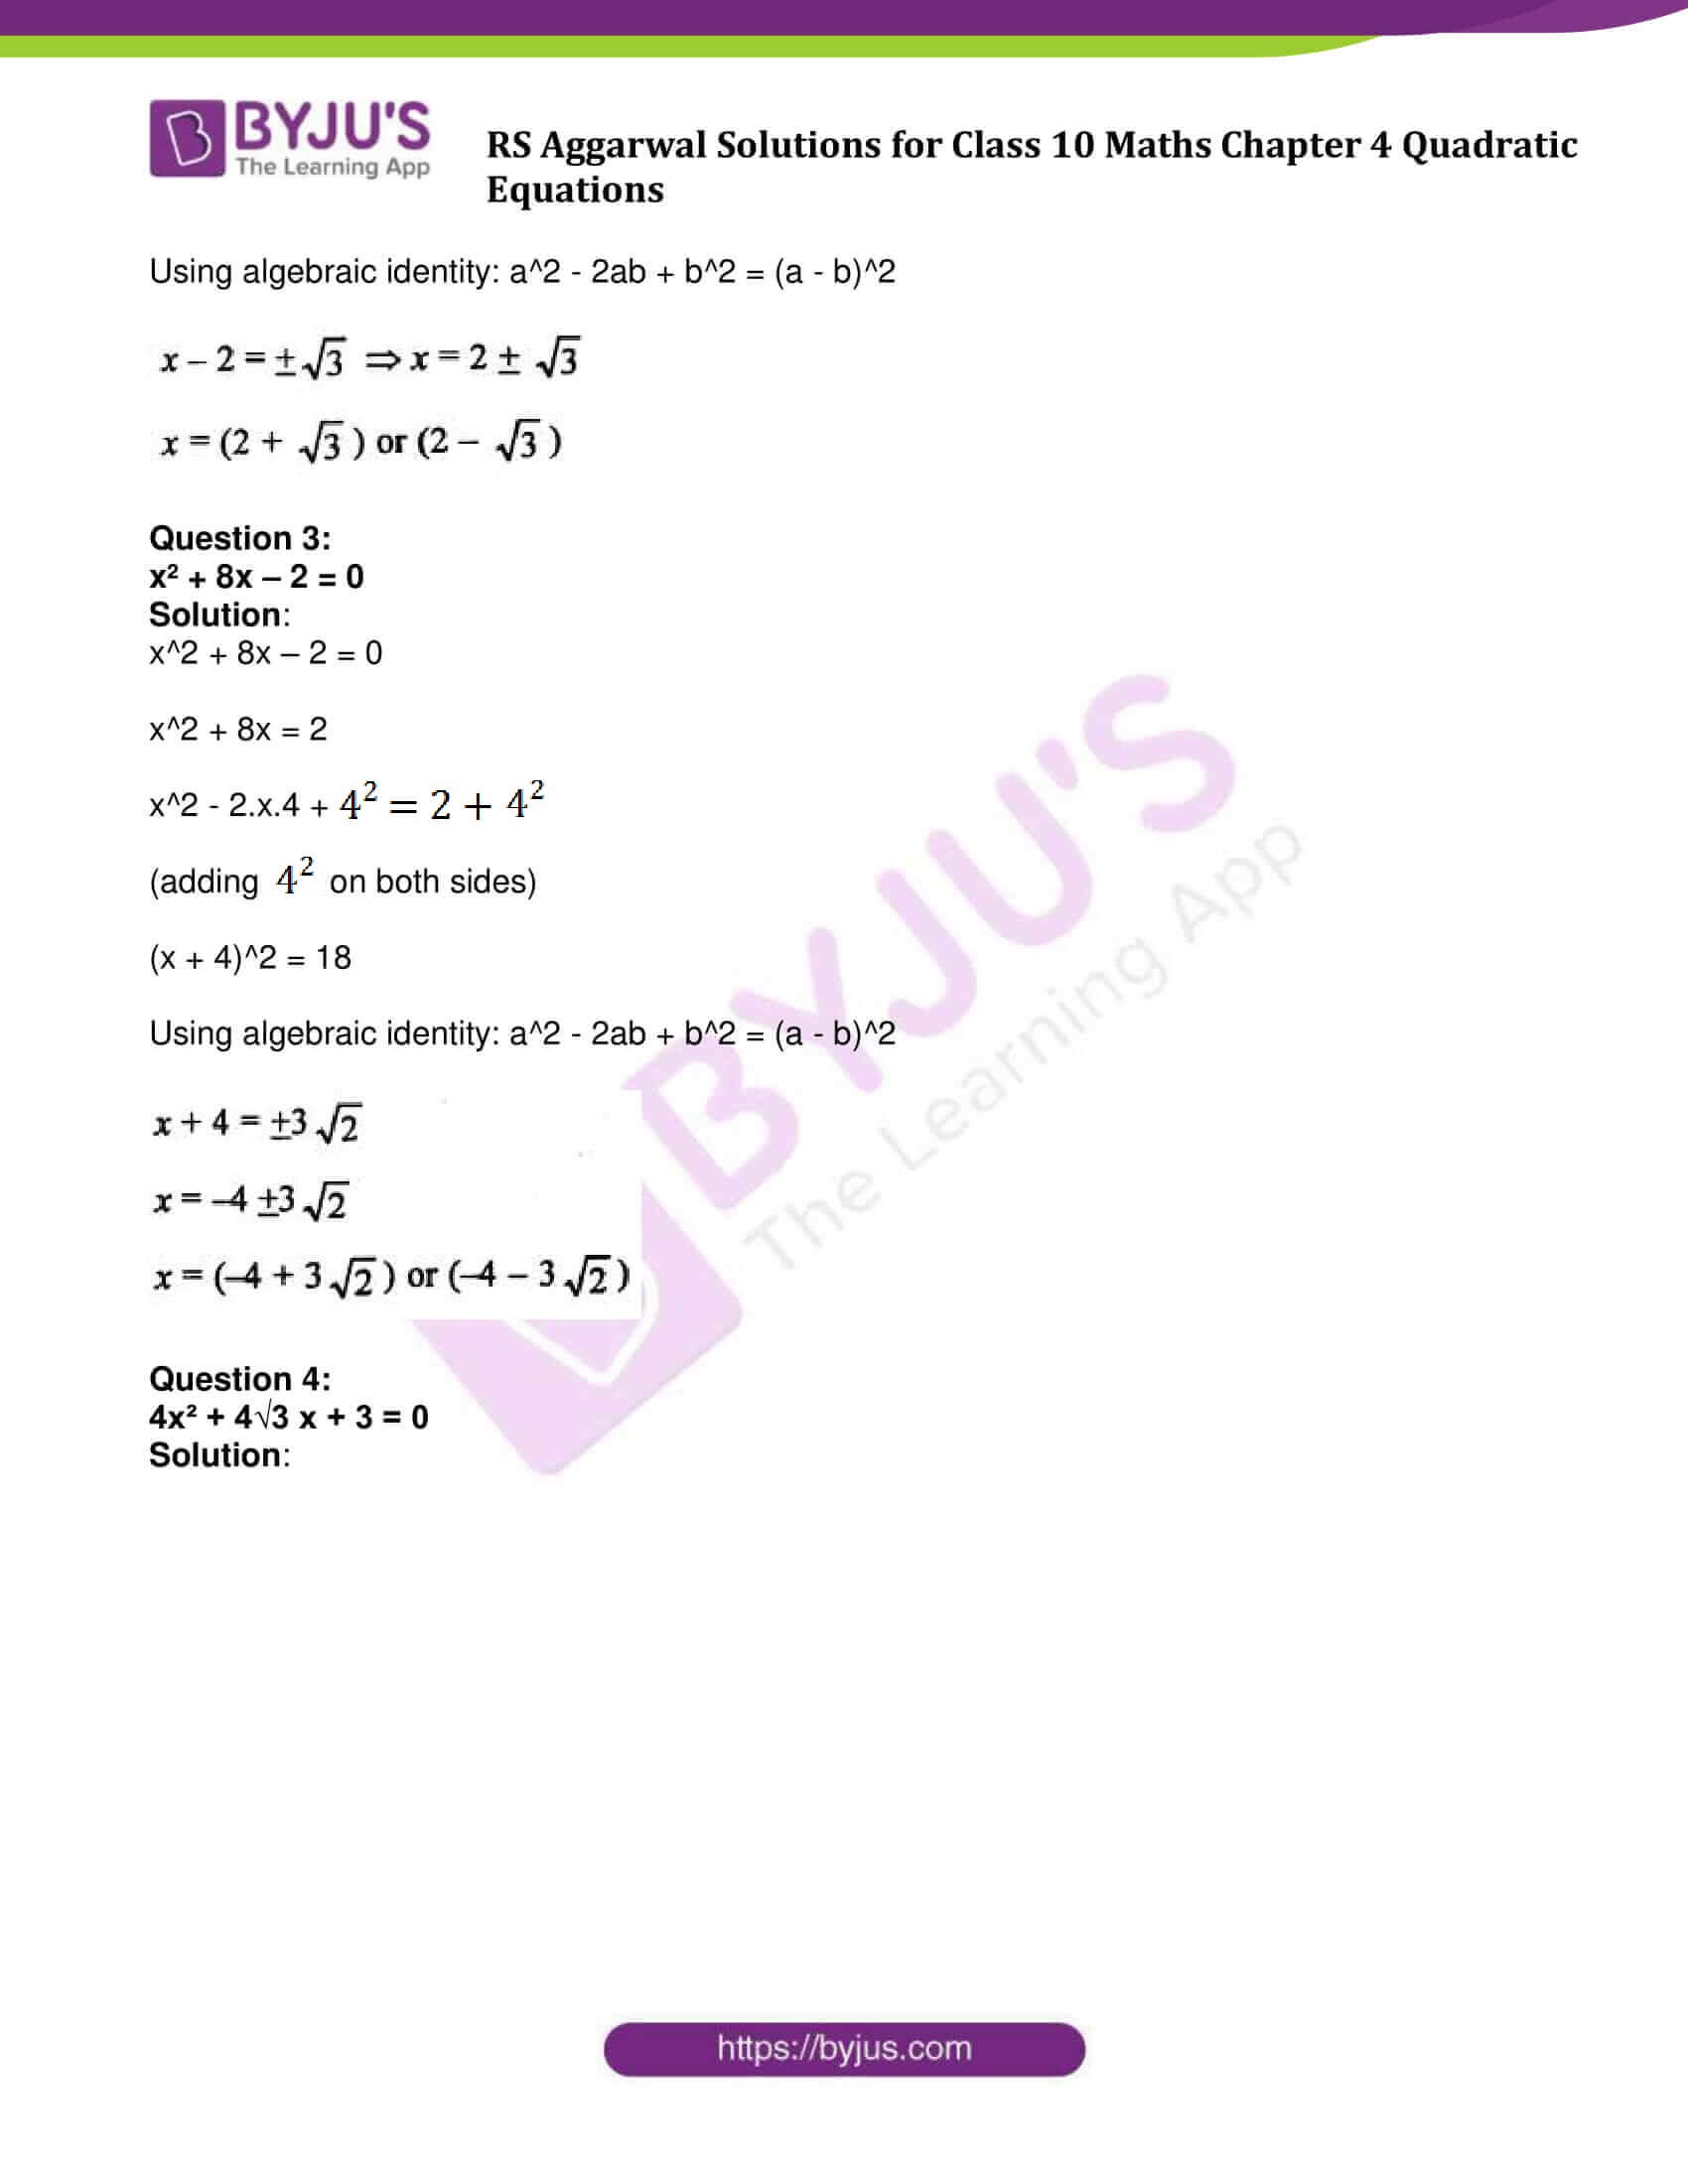 RS Aggarwal Sol class 10 Maths Chapter 4B